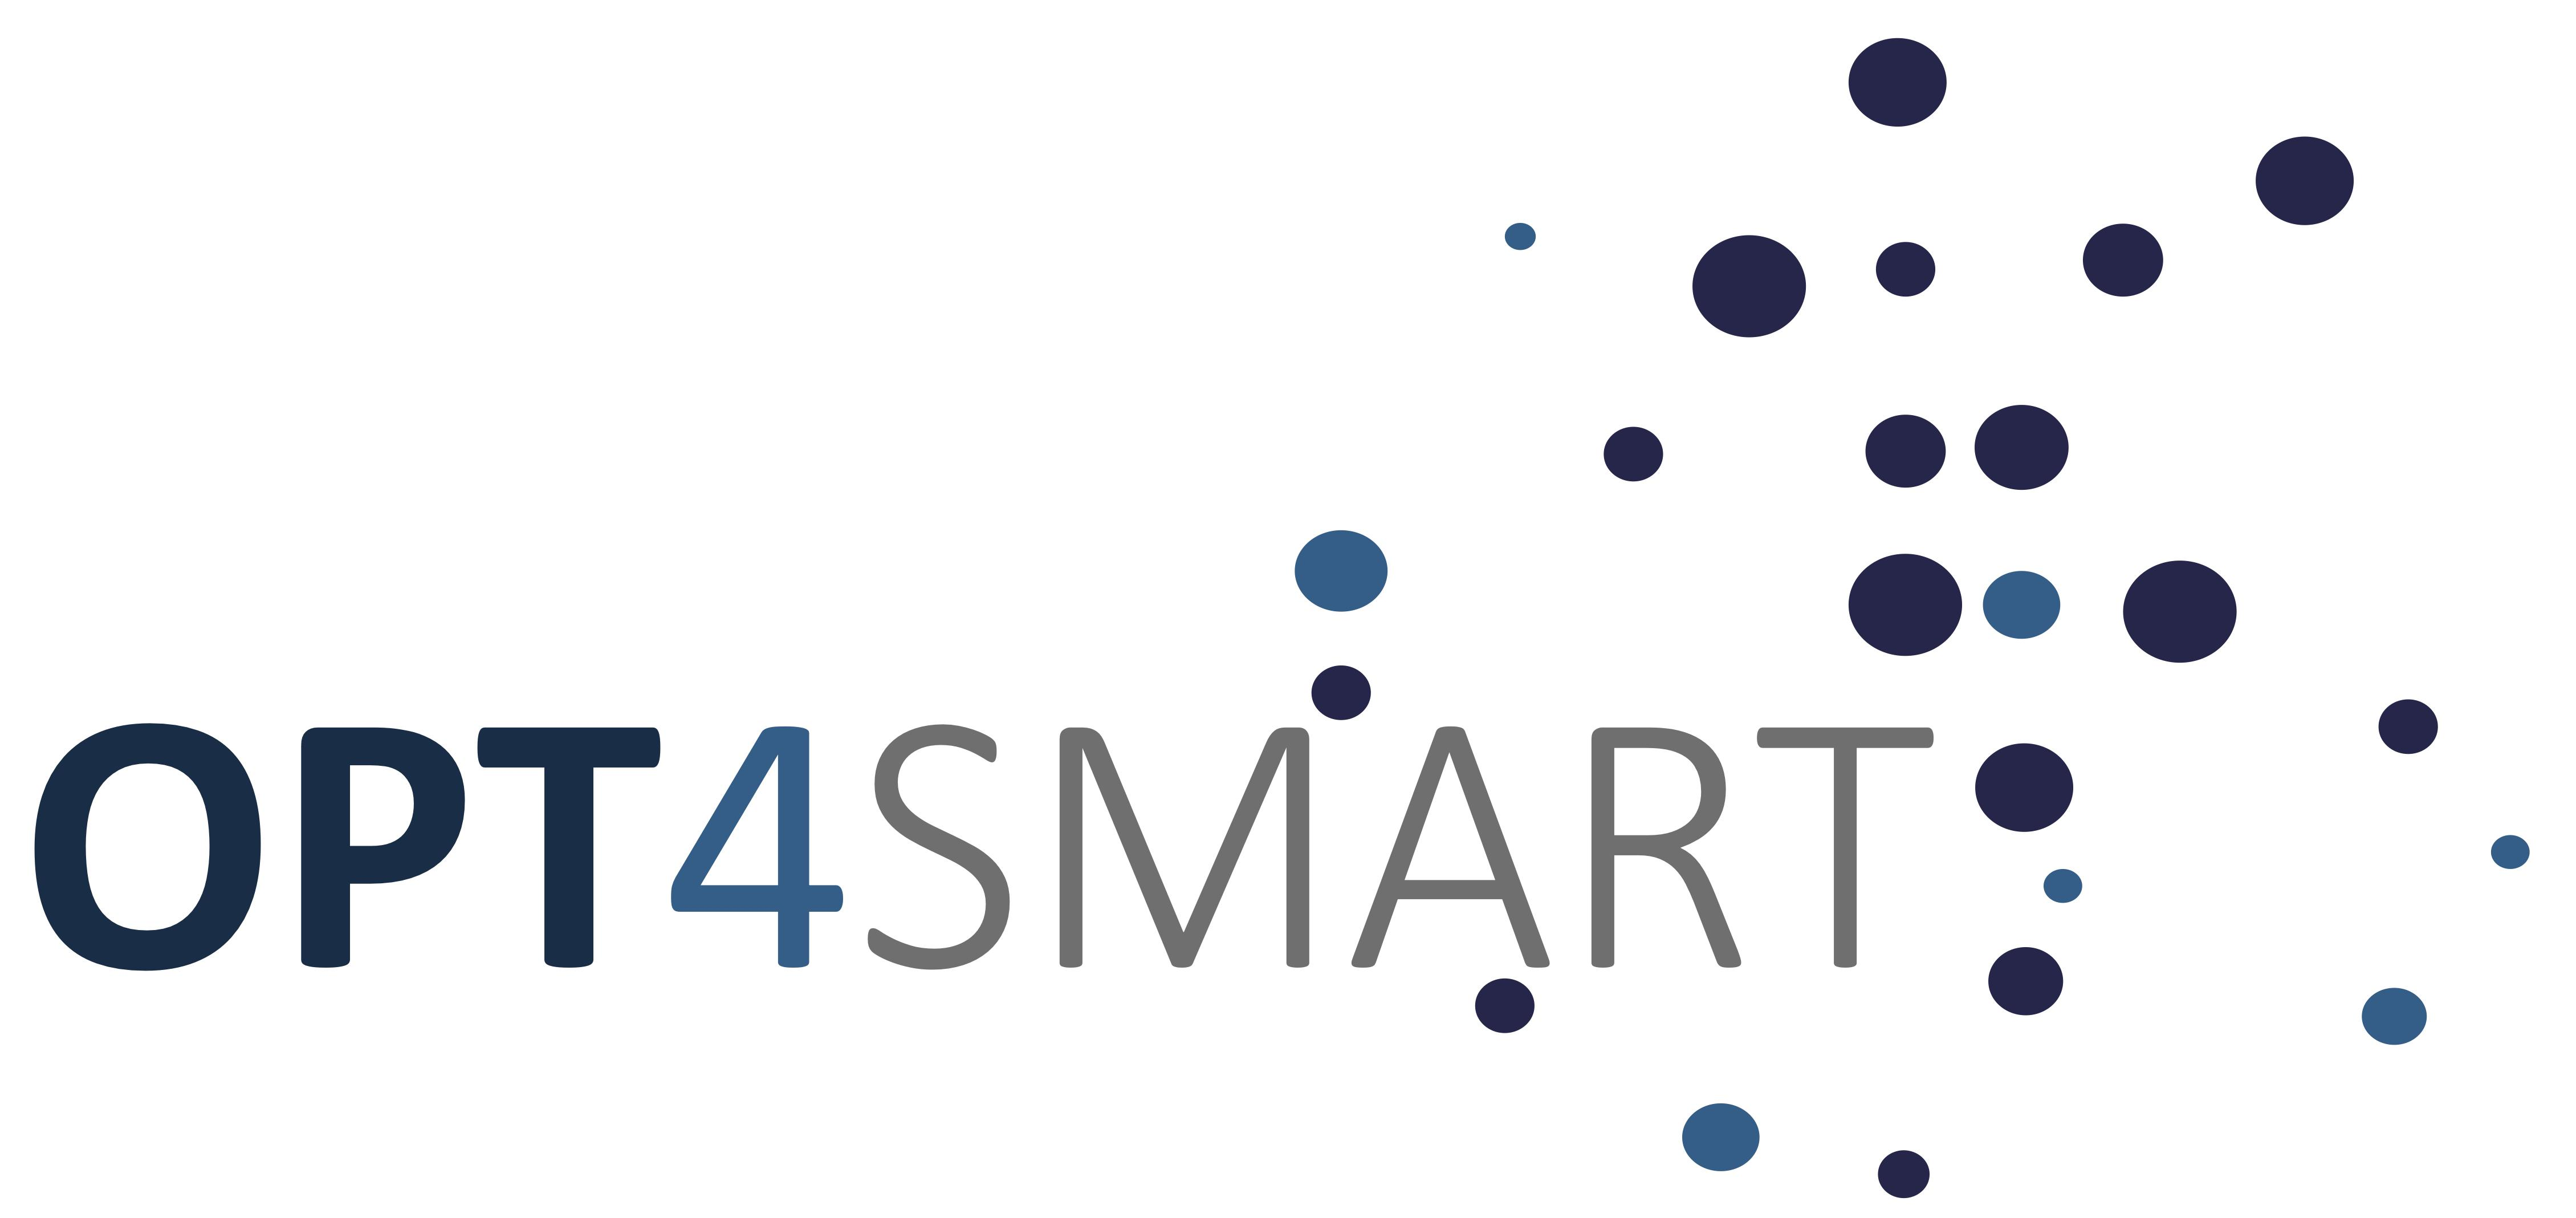 OPT4SMART (Distributed Optimization Methods for Smart Cyber-Physical Networks)